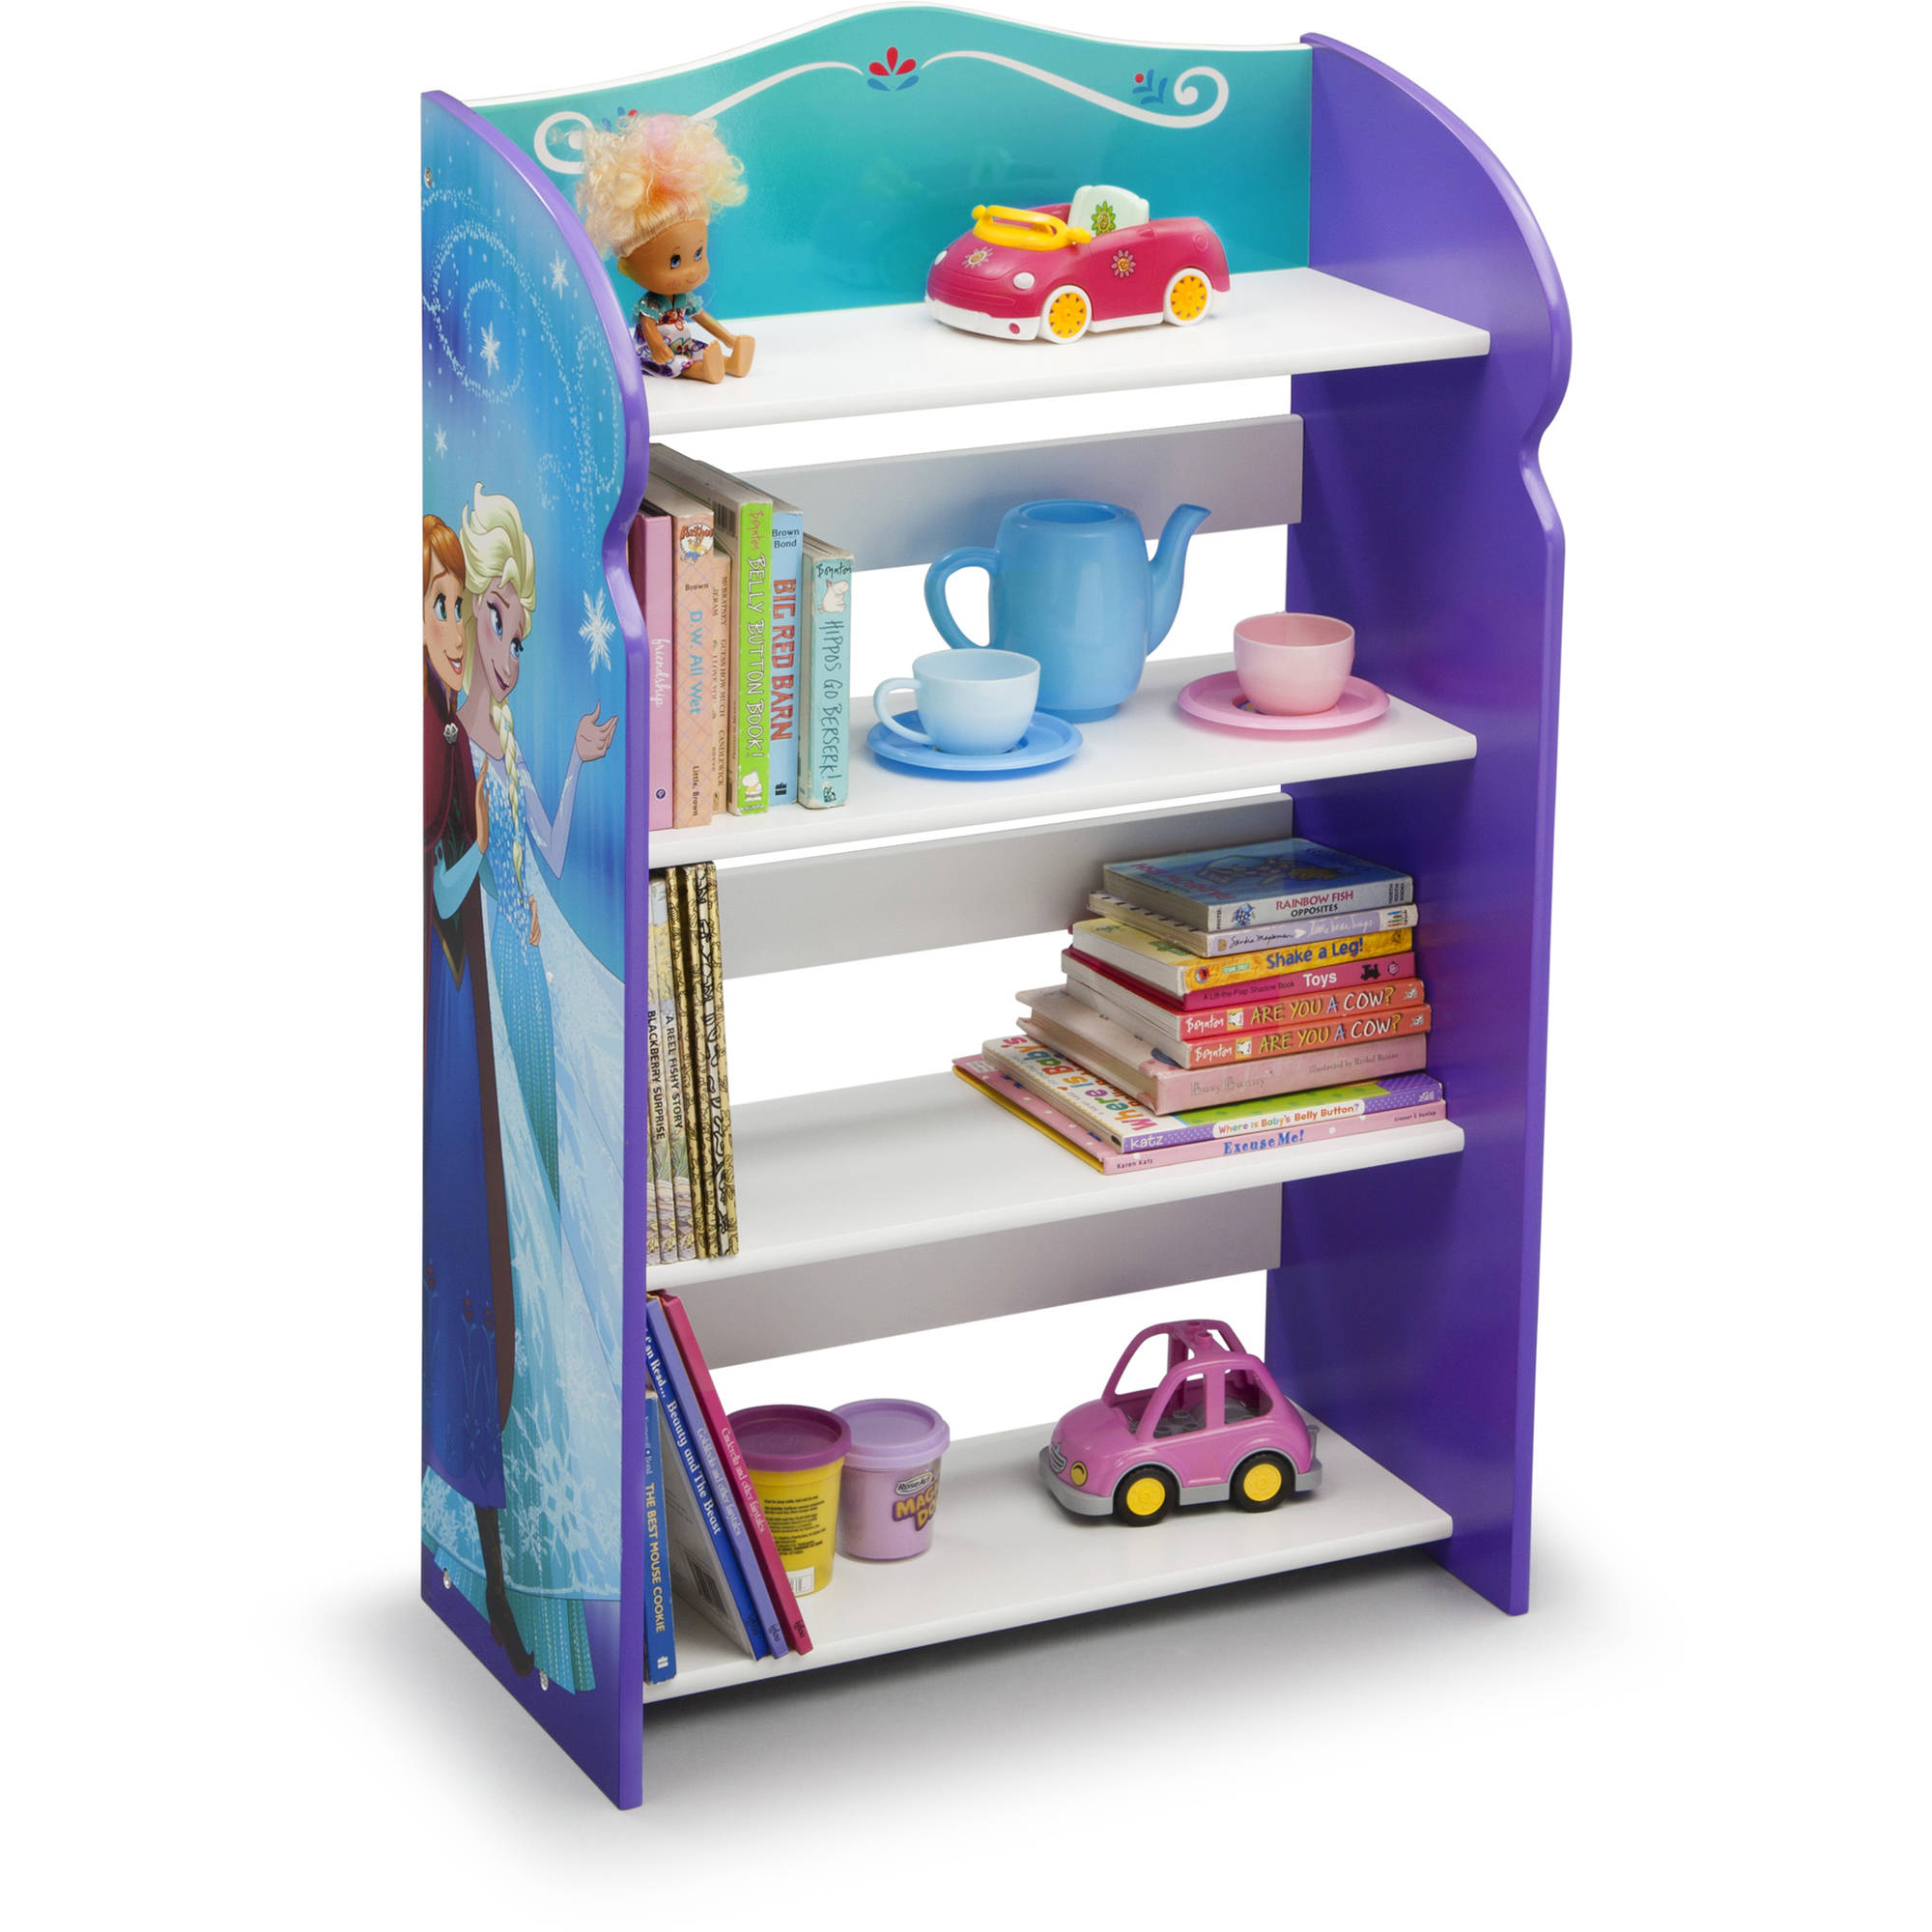 Disney Frozen Wood Bookshelf By Delta Children   Walmart.com